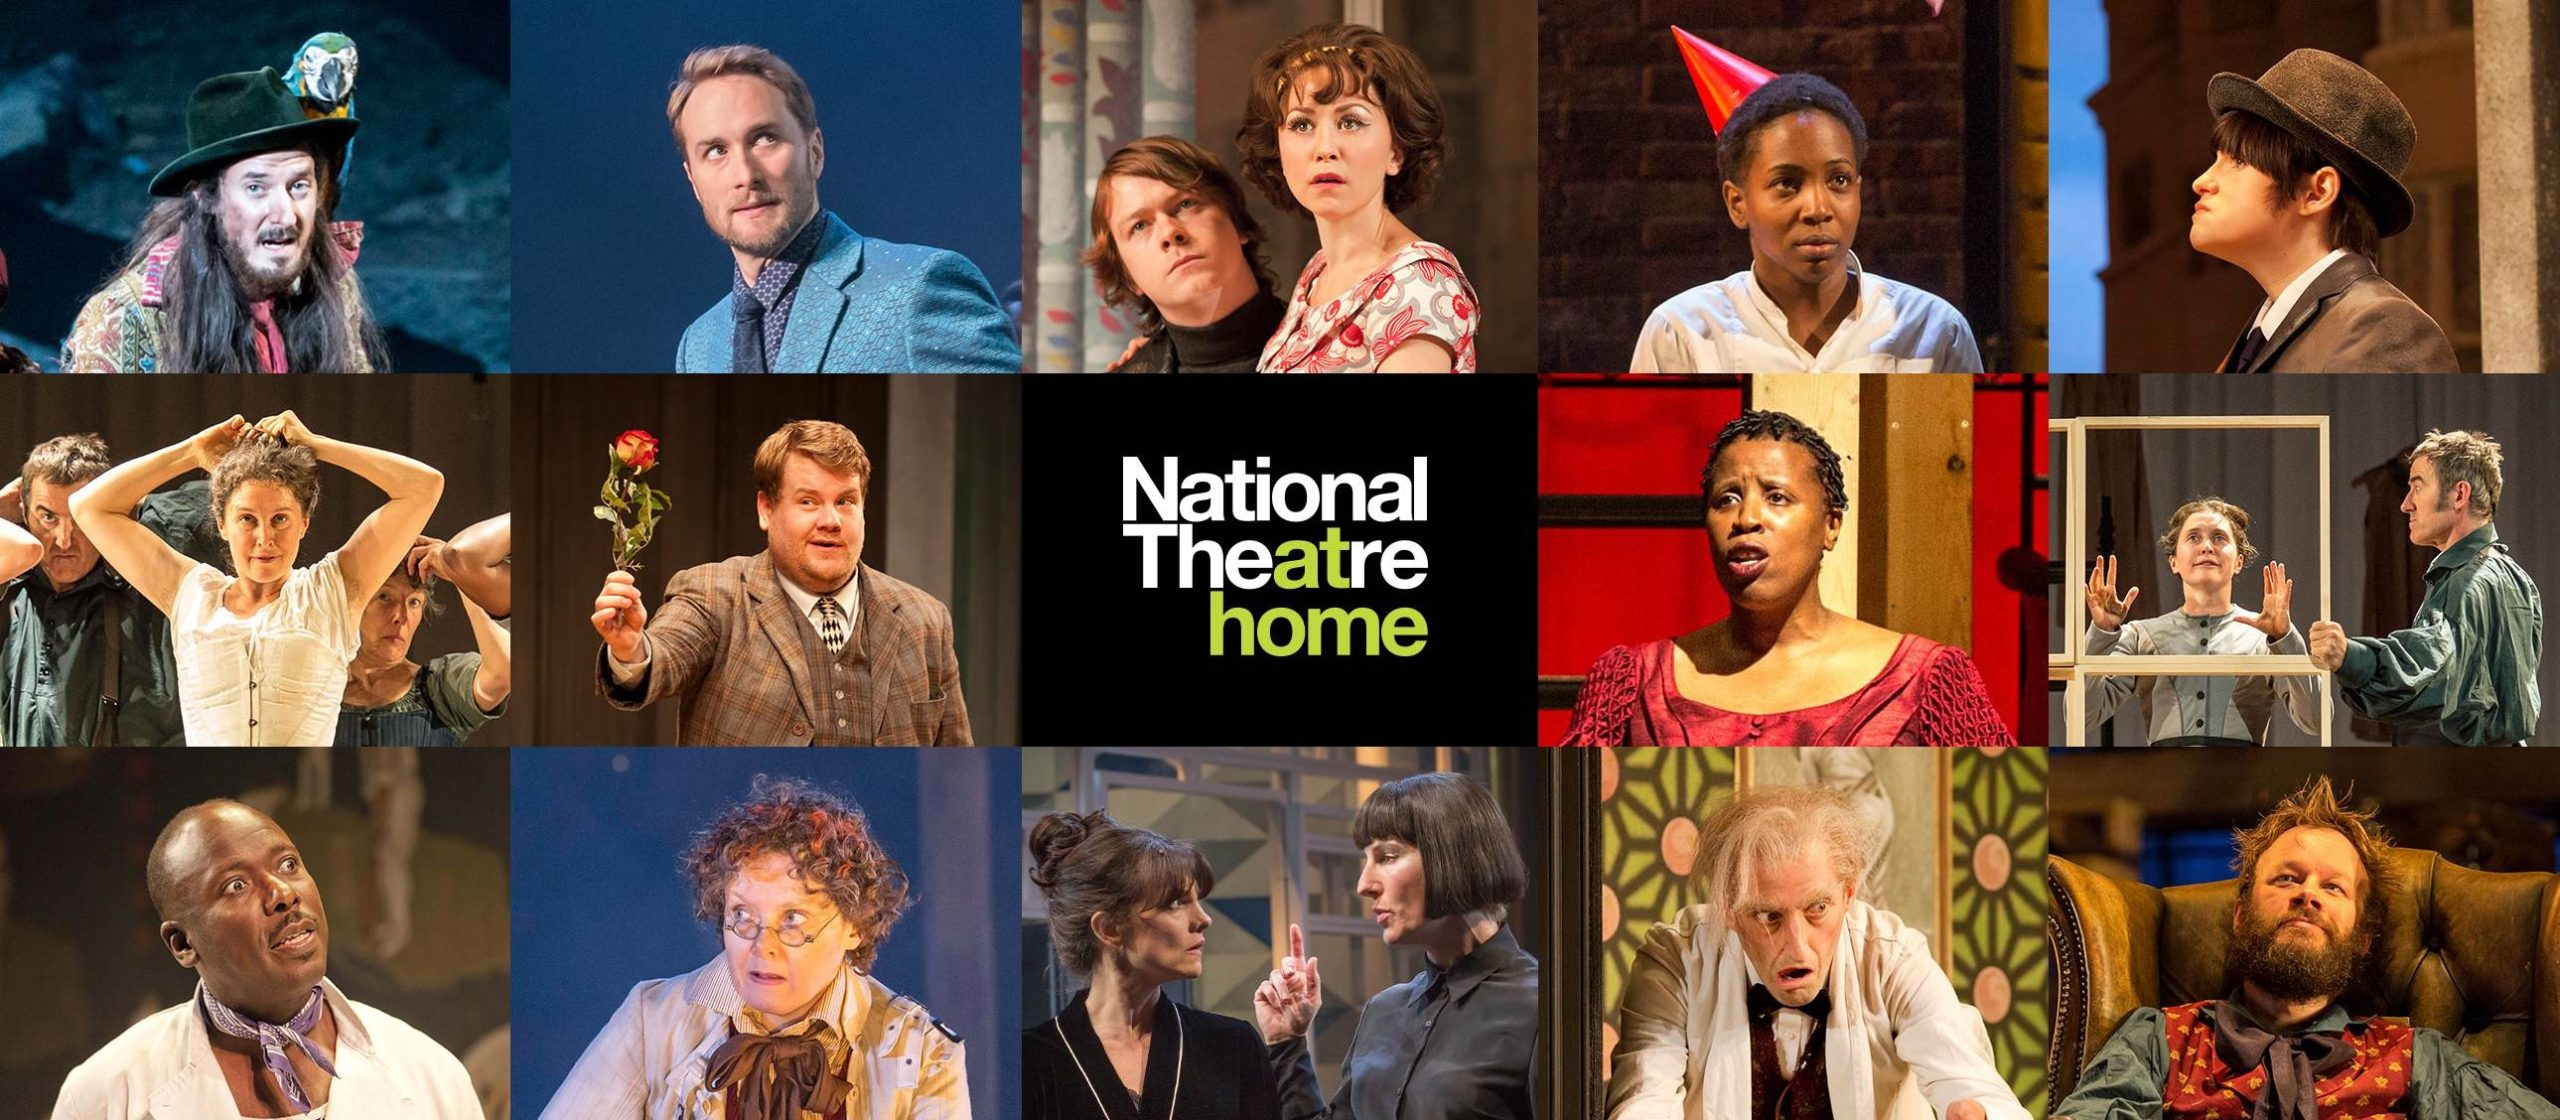 Enjoy National Theatre Live Productions Free on YouTube Every Week!